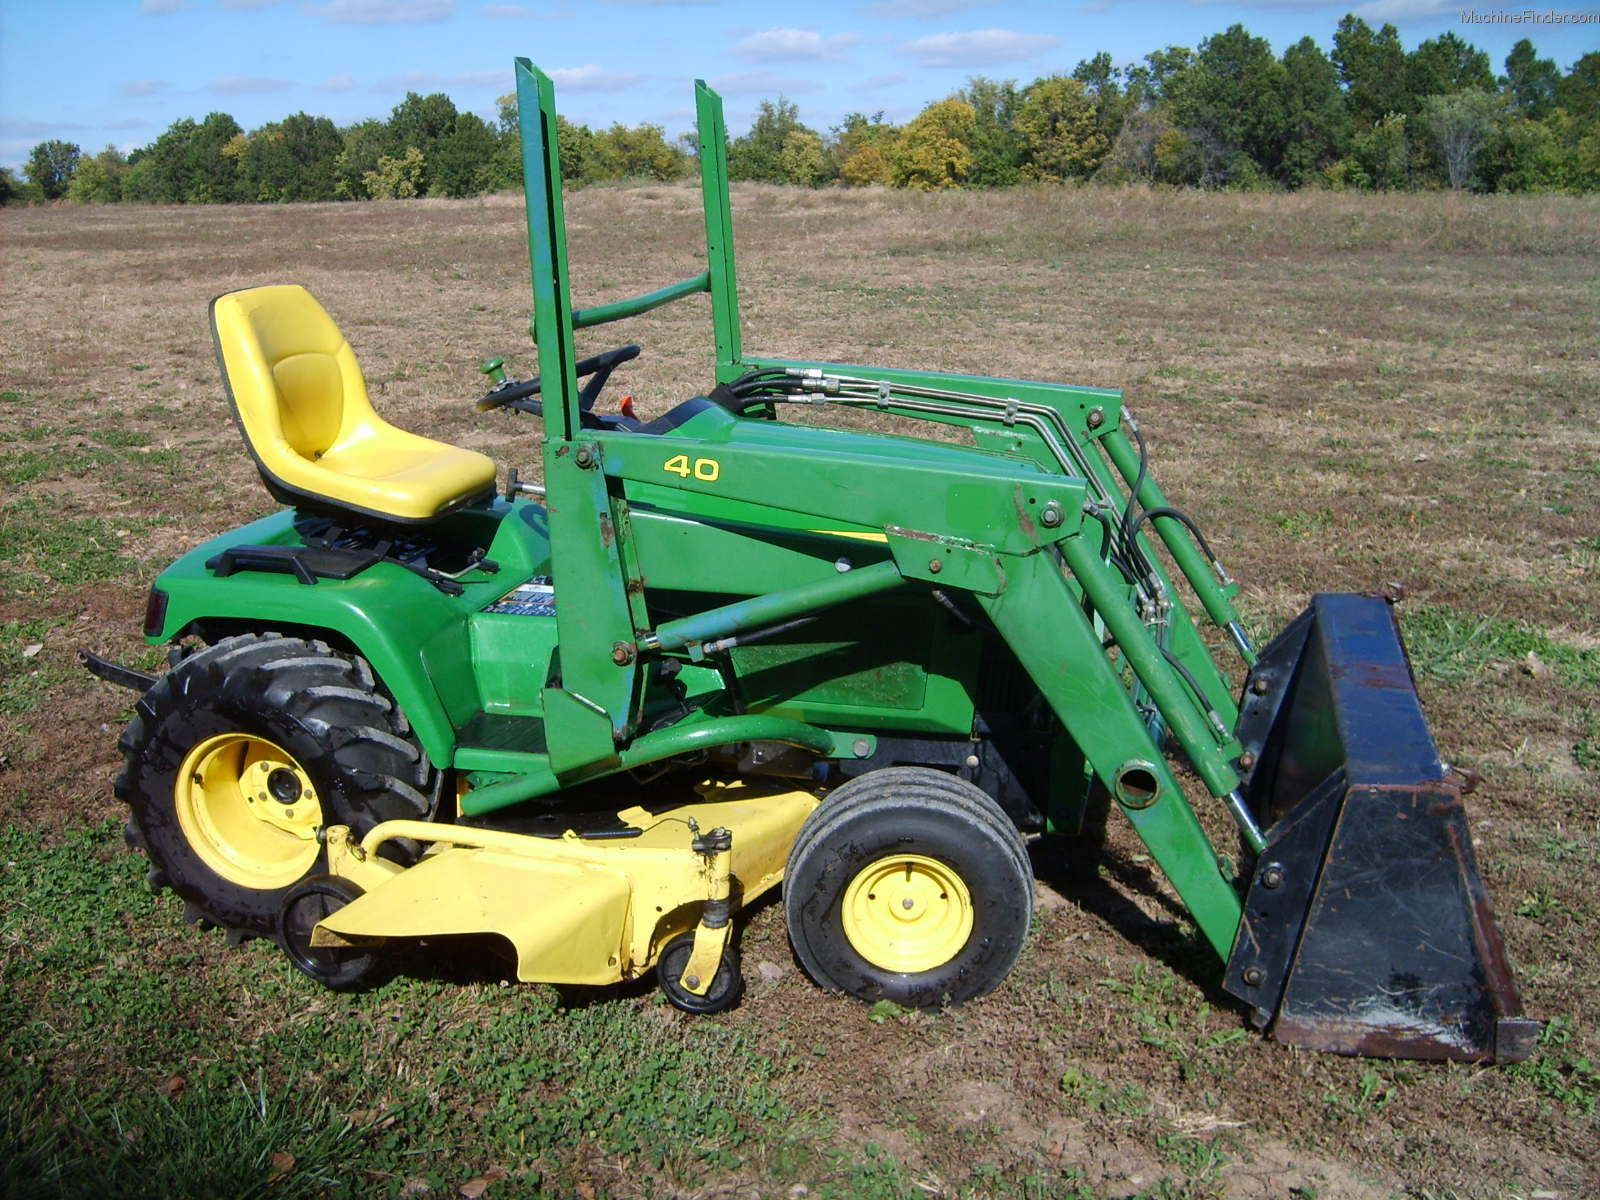 john deere 455 wiring diagram trailer download kohler m20 free engine image for